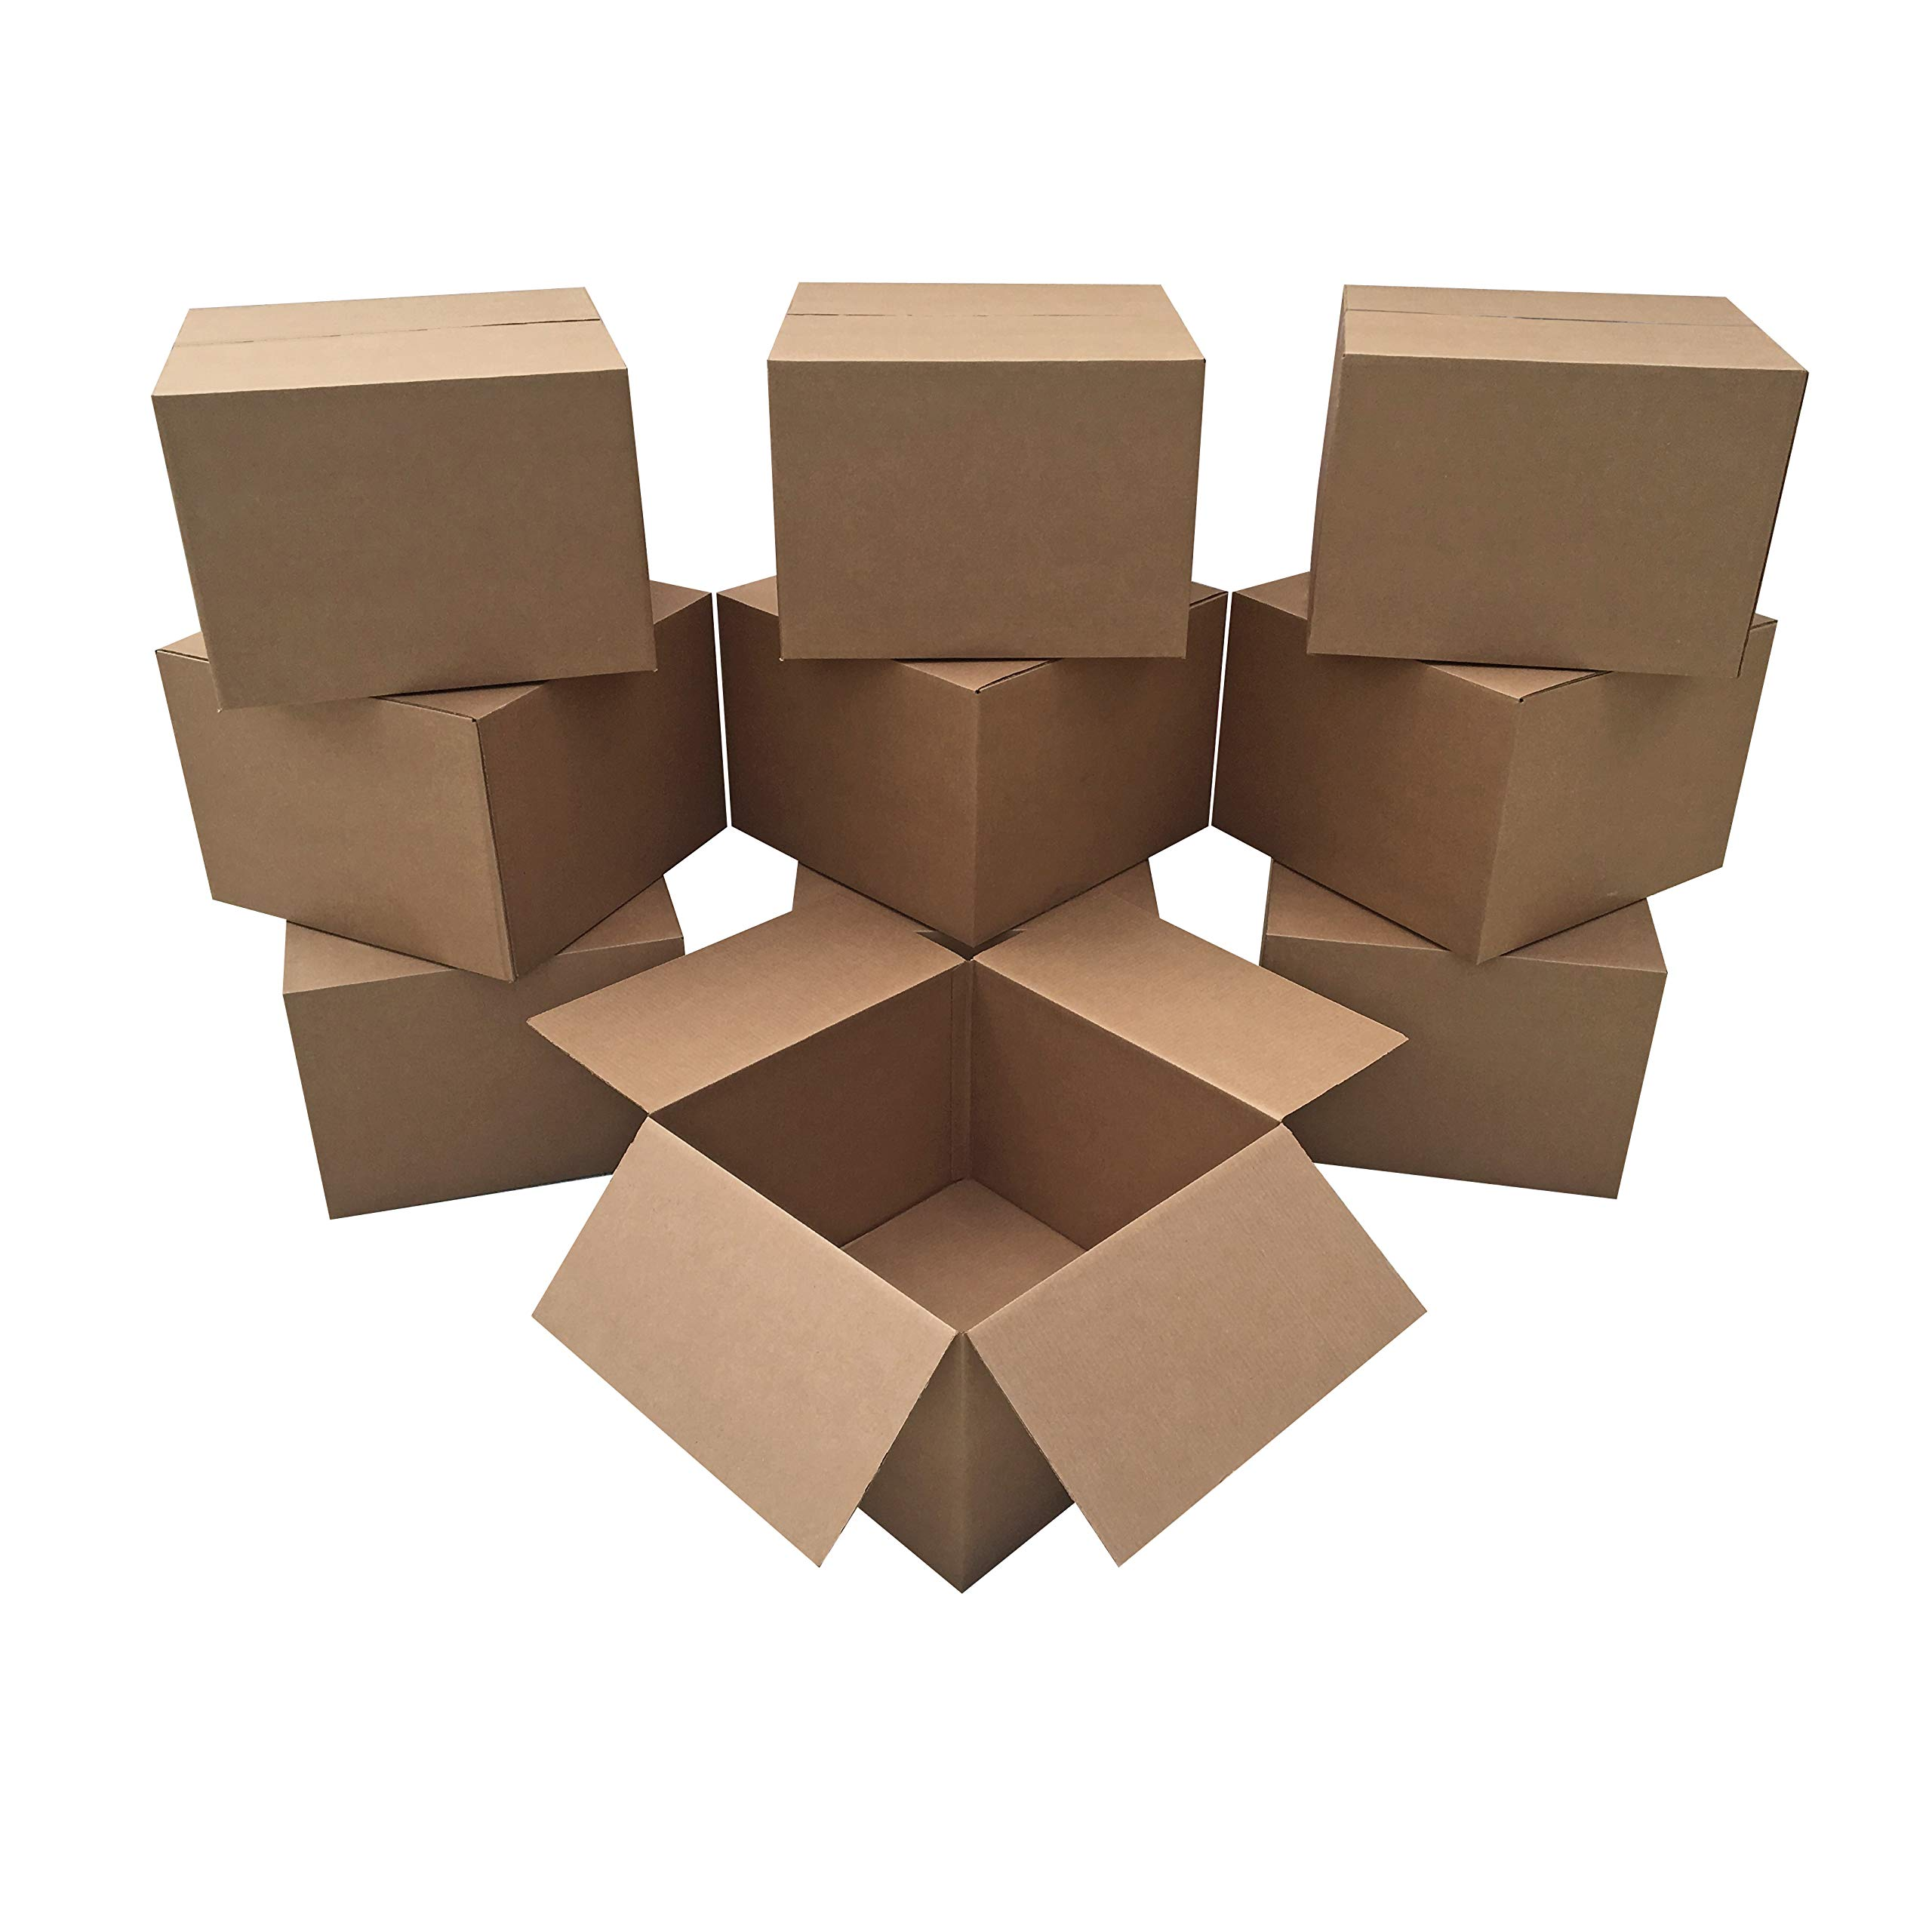 10 Extra Large Moving Boxes 23x23x16